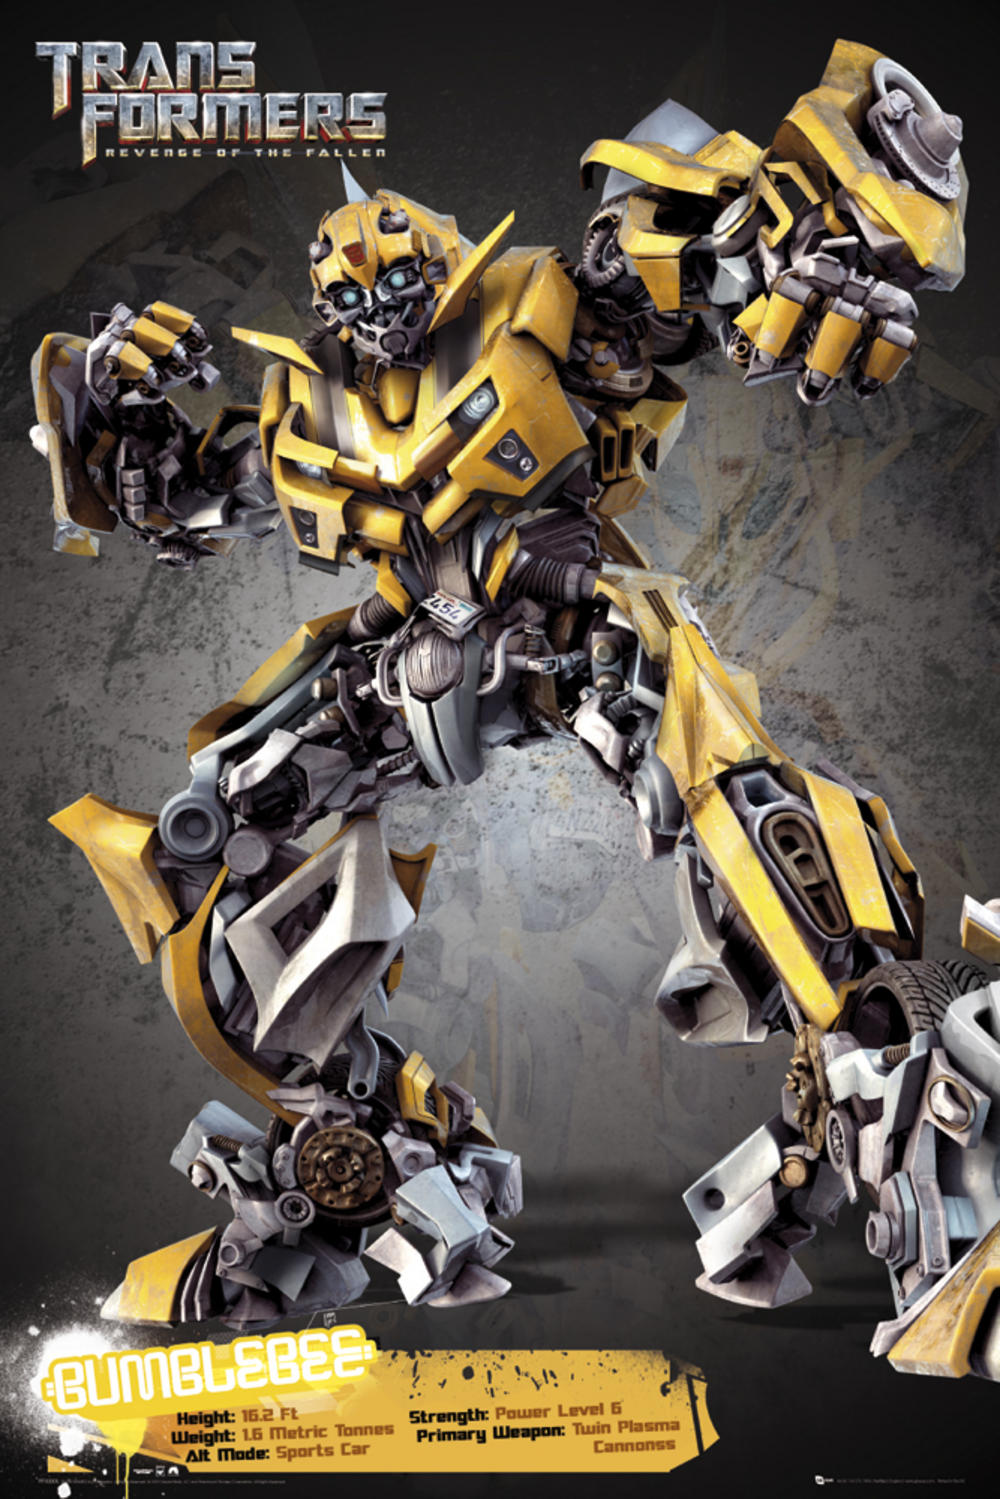 maxi poster transformers 2 bumblebee 61 x 91 5 cm 201 maxi poster 61cm x 24 x 36. Black Bedroom Furniture Sets. Home Design Ideas